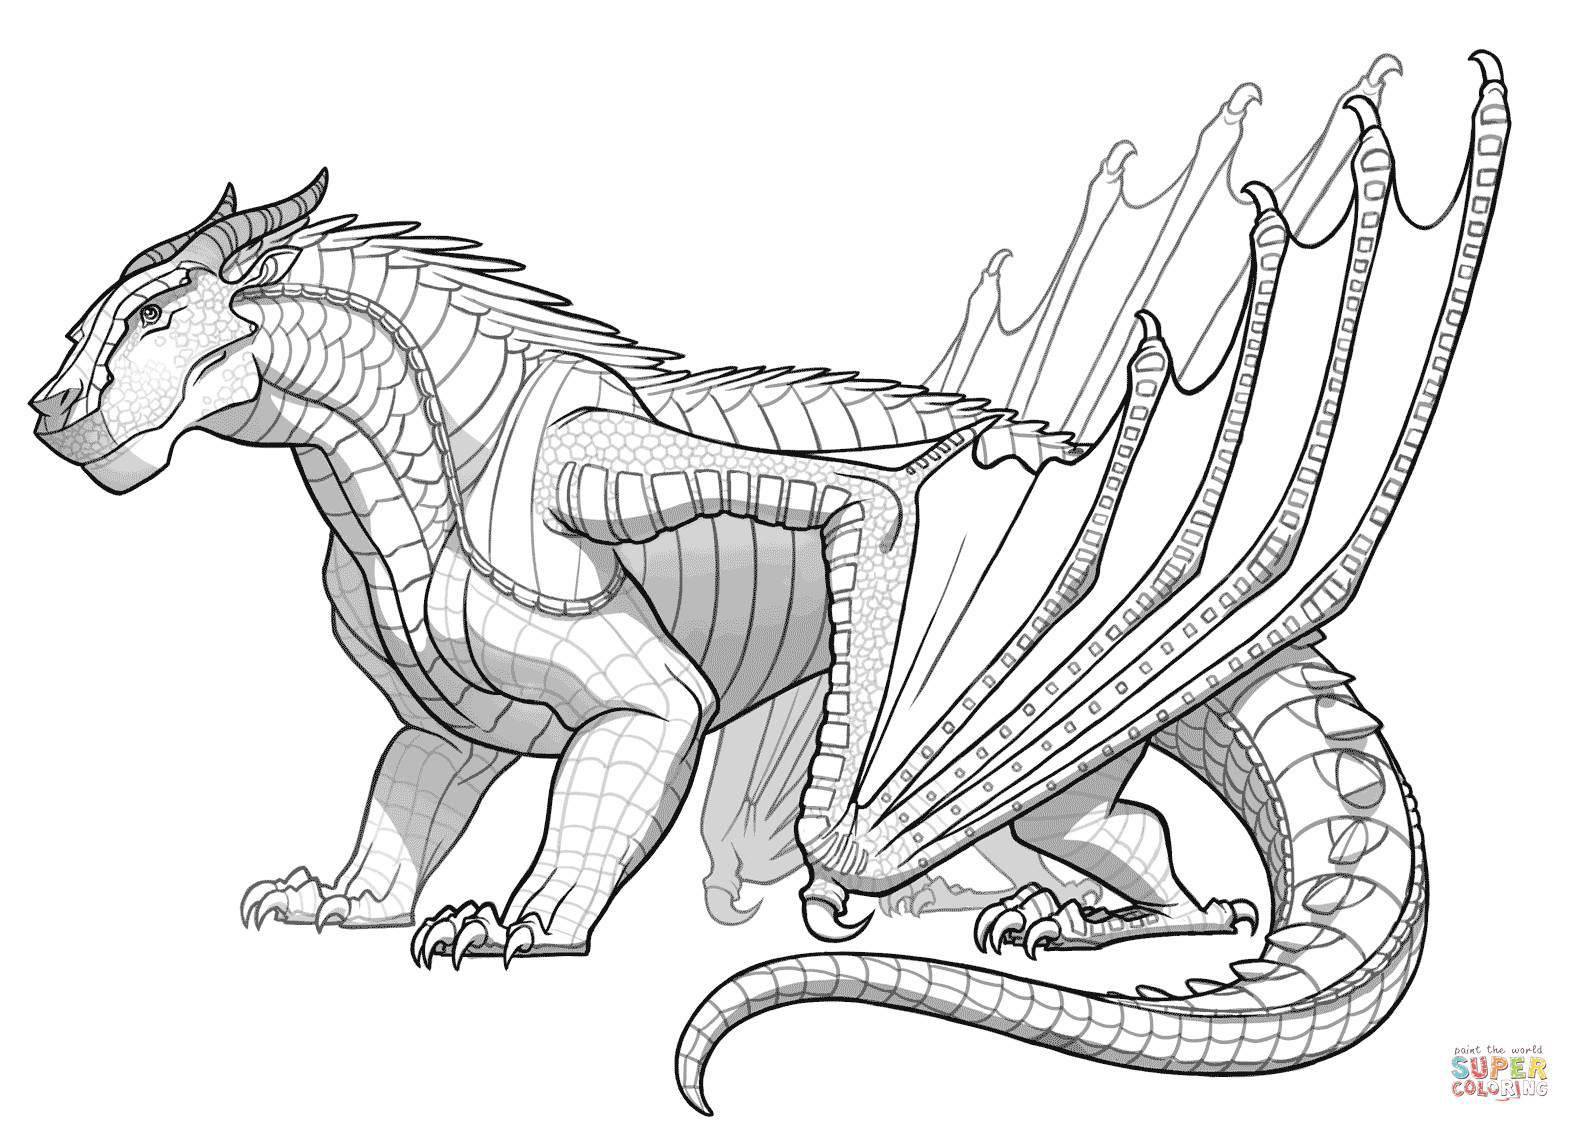 Wings Of Fire Coloring Pages  Mudwing Dragon from Wings of Fire coloring page